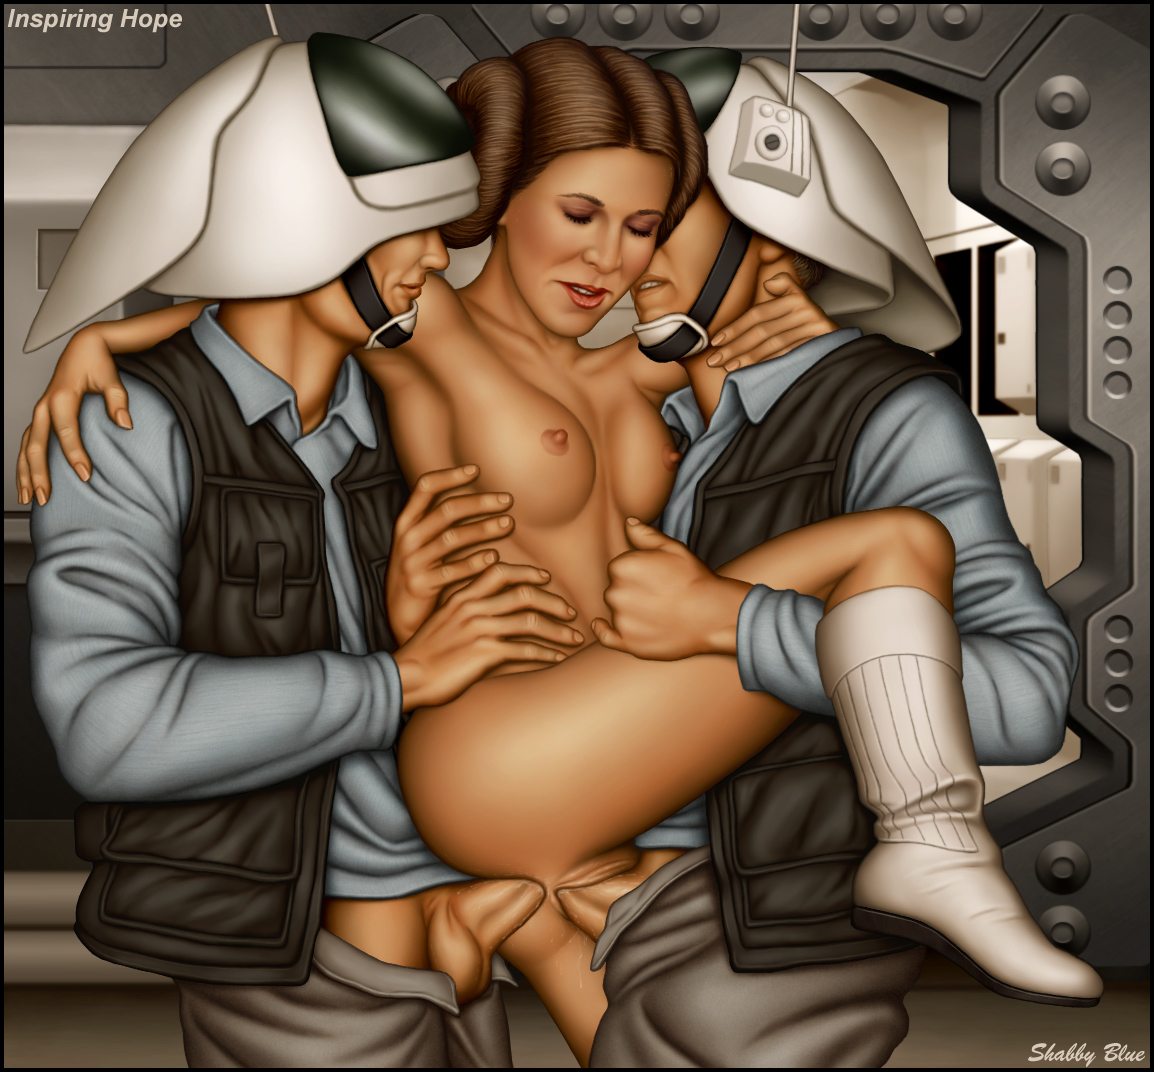 clone wars cartoon porn